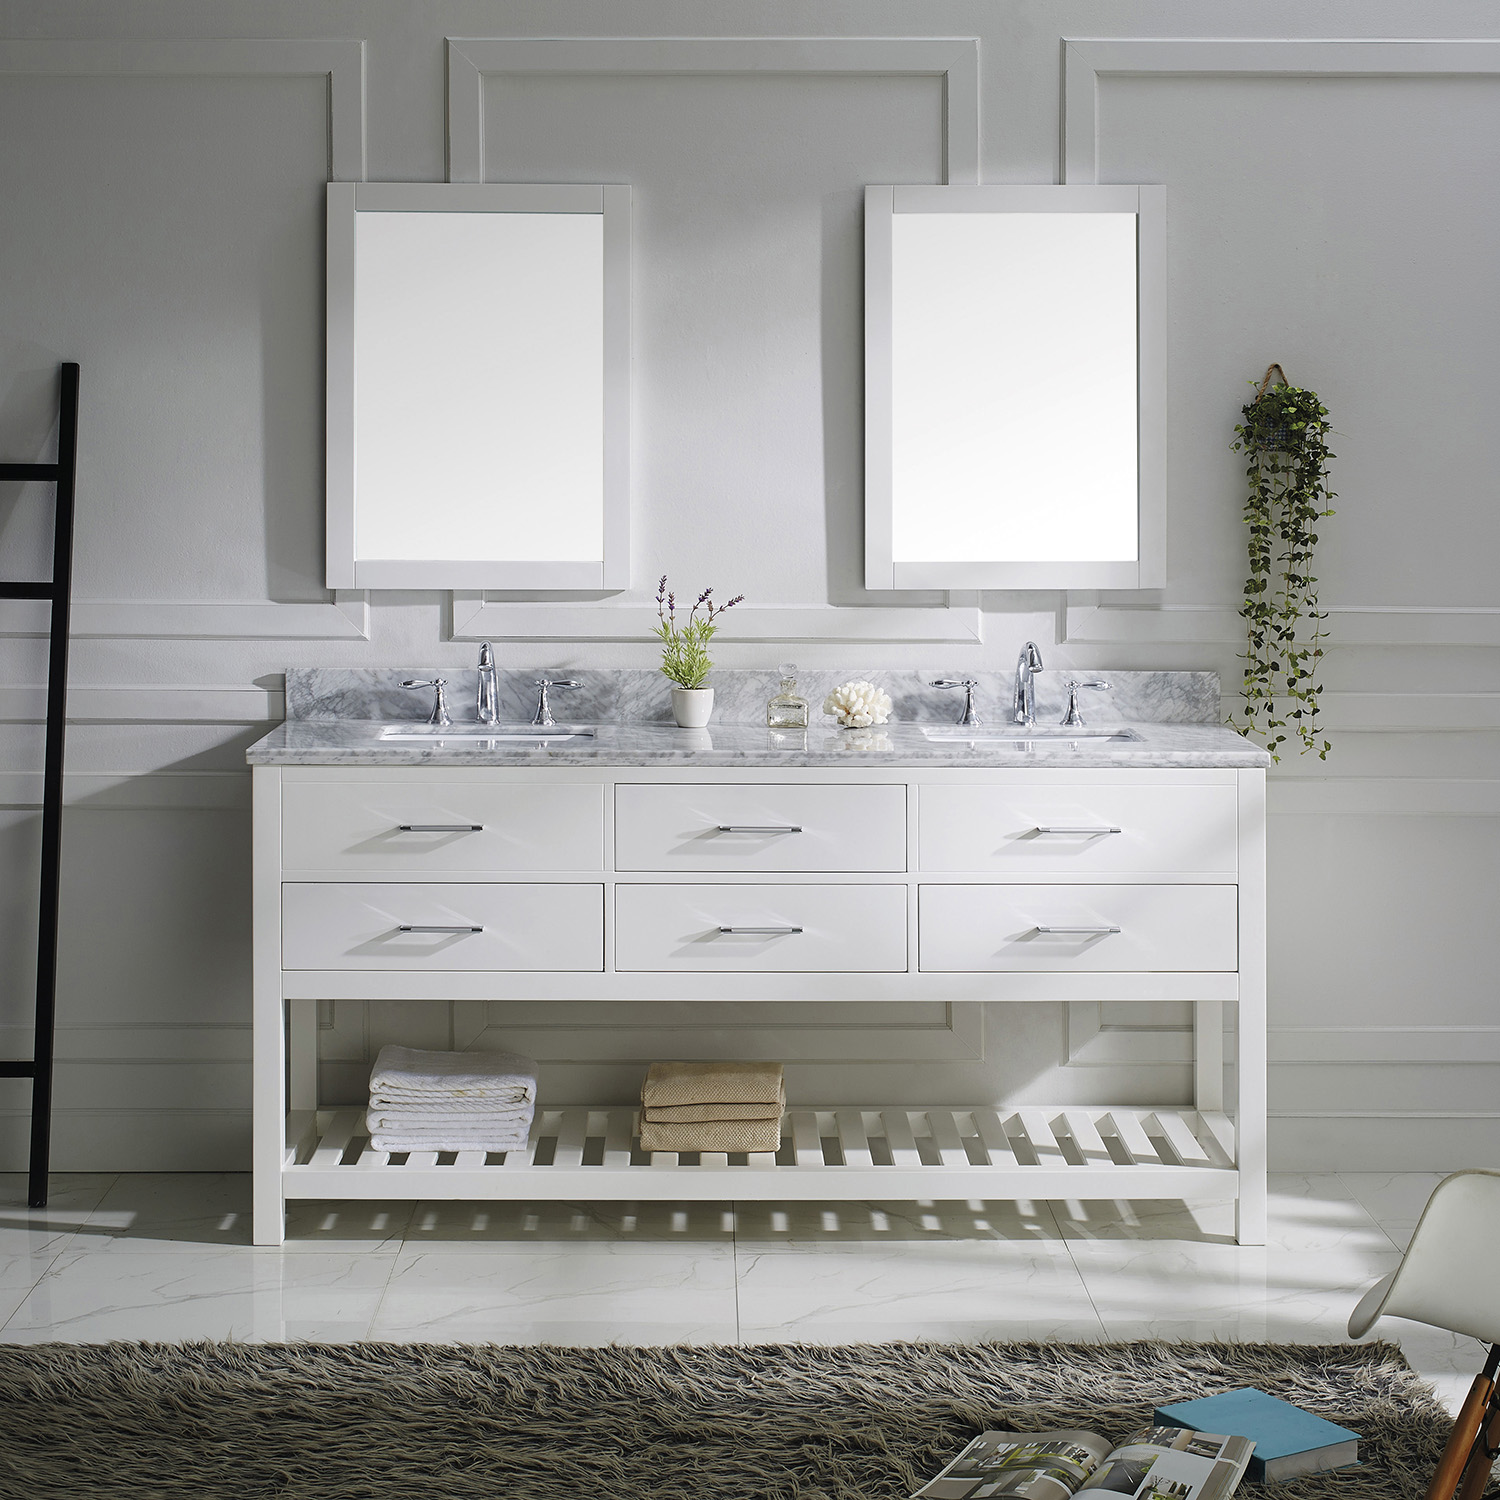 How to Know if Your Bathroom Vanity is High Quality? - Luxury Living ...